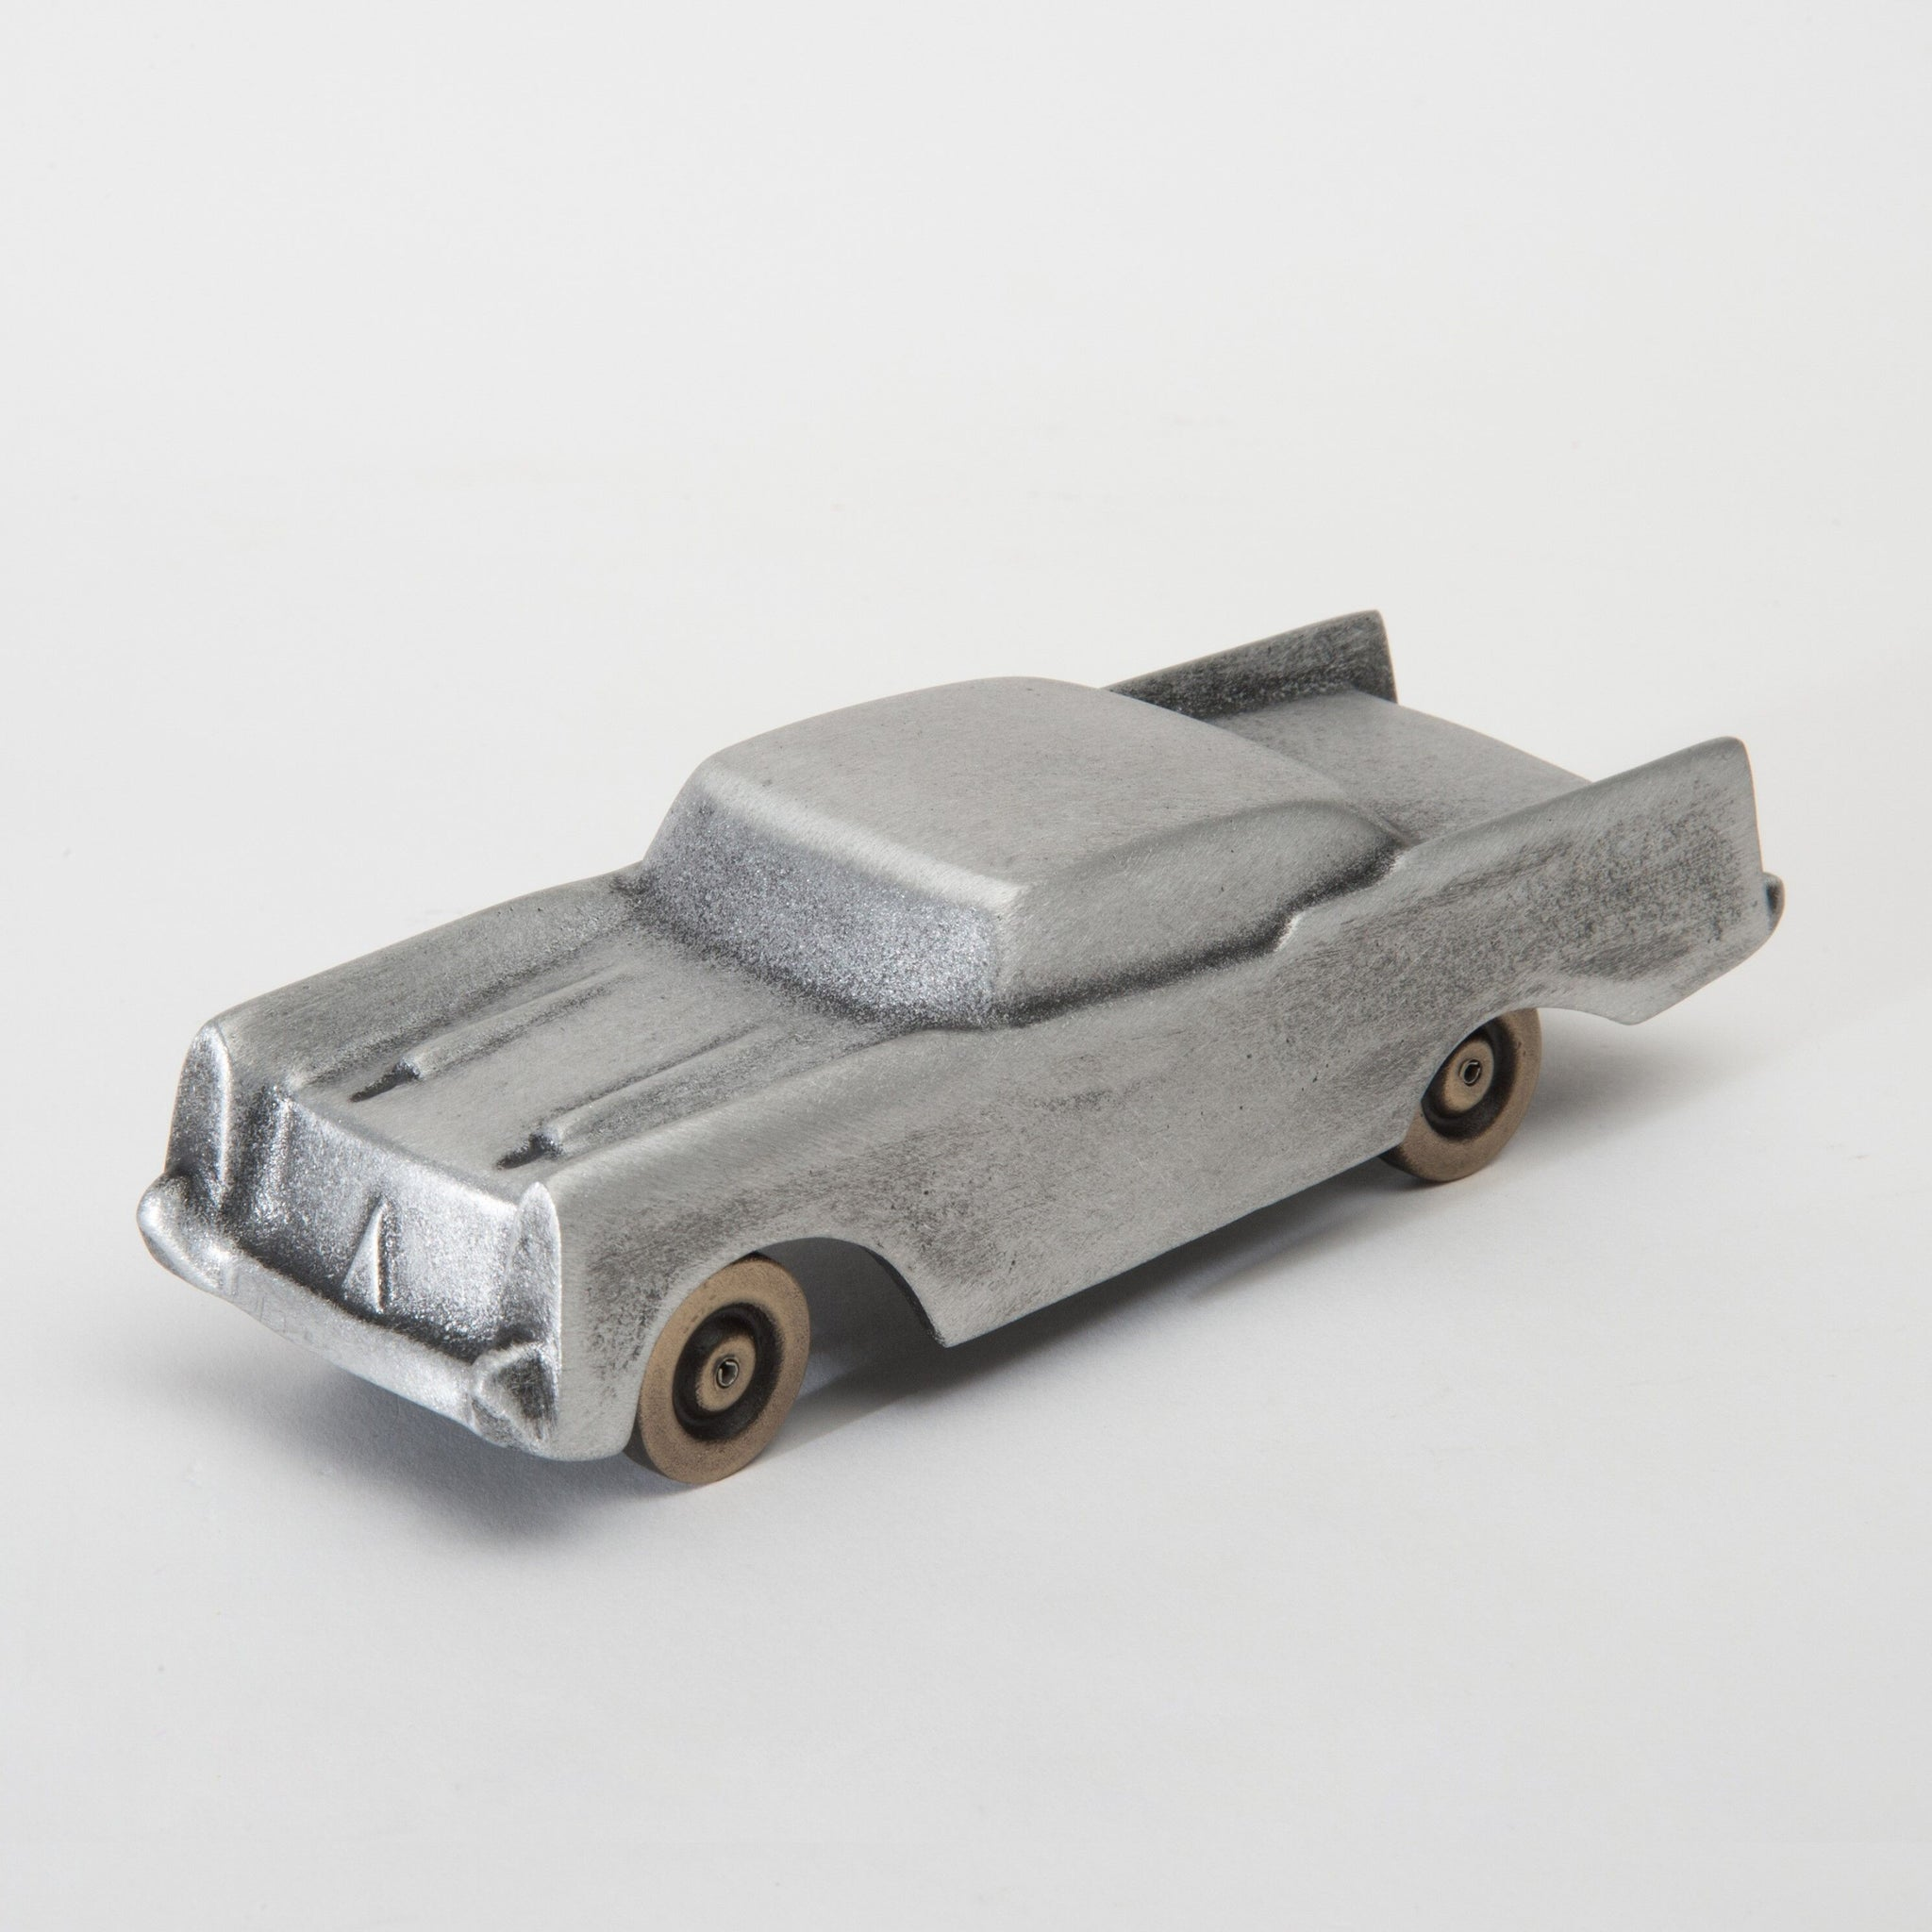 '57  Bronze Shaker Car Sculpture